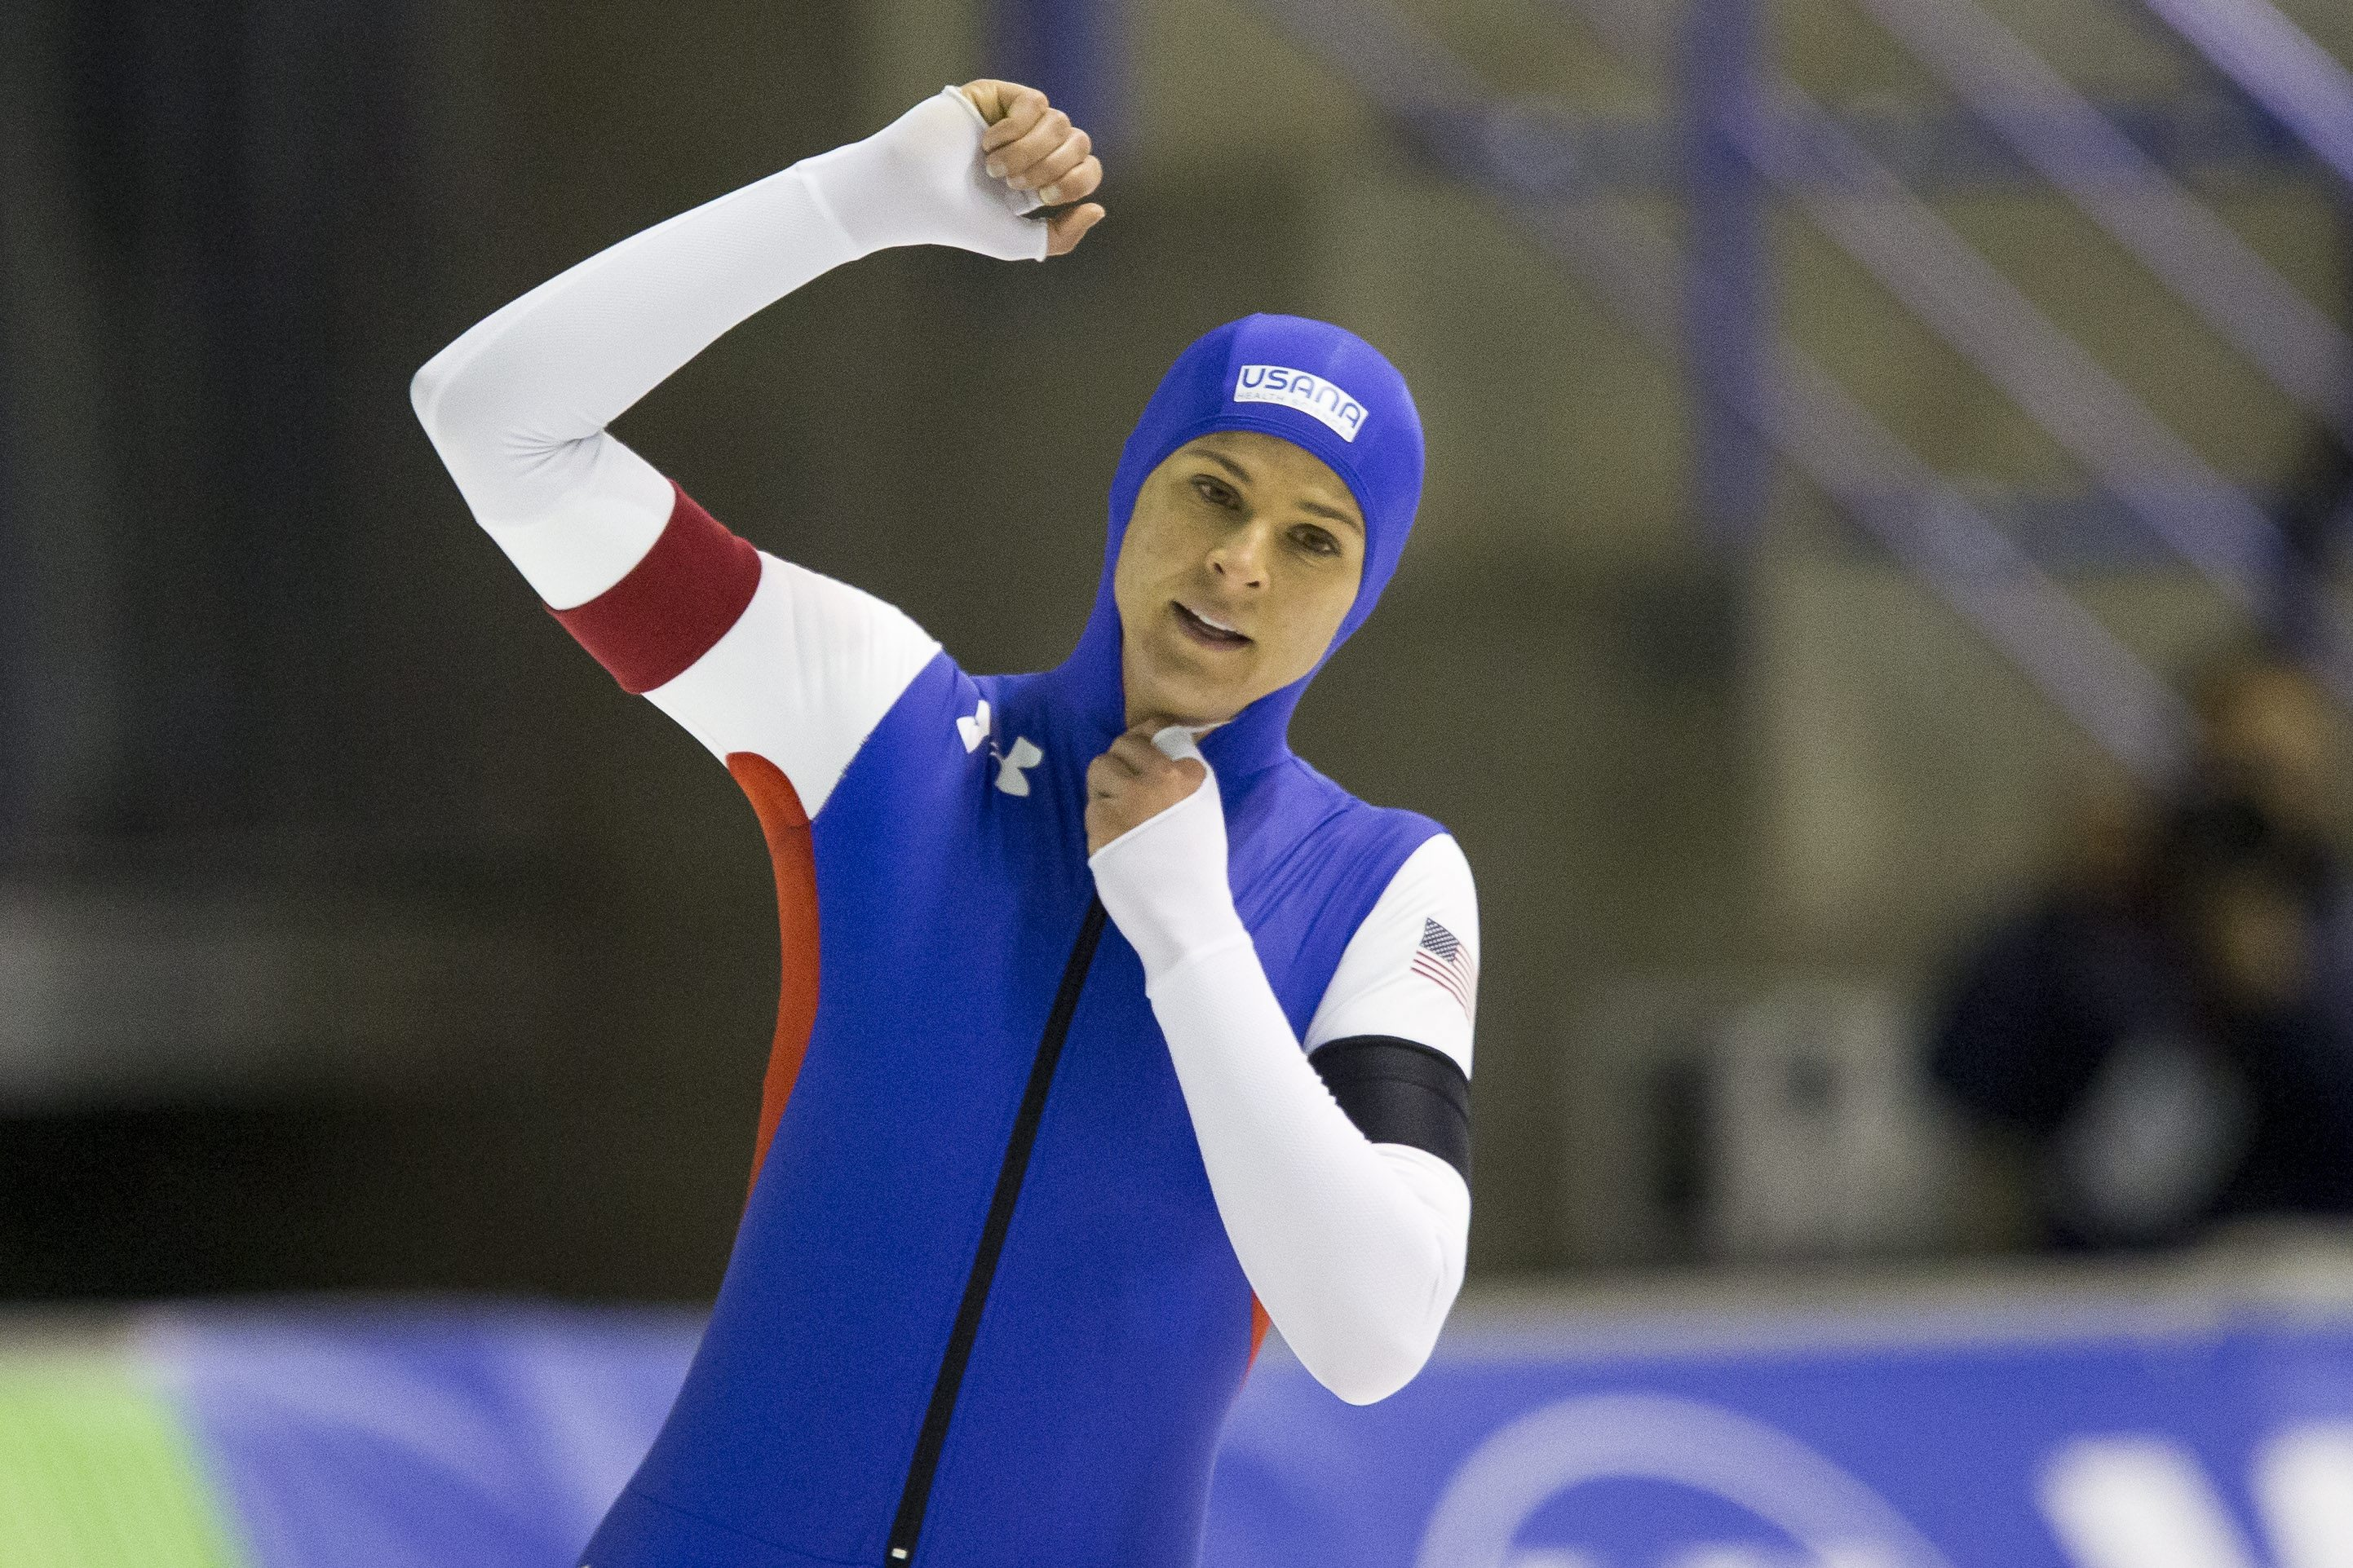 Brittany Bowe, of the United States, celebrates setting a new world record of 1 minute, 51.59 seconds during the women's 1,500 meters at the World Cup speedskating event in Calgary, Alberta, Sunday, Nov. 15, 2015. (Lyle Aspinall/The Canadian Press via AP)